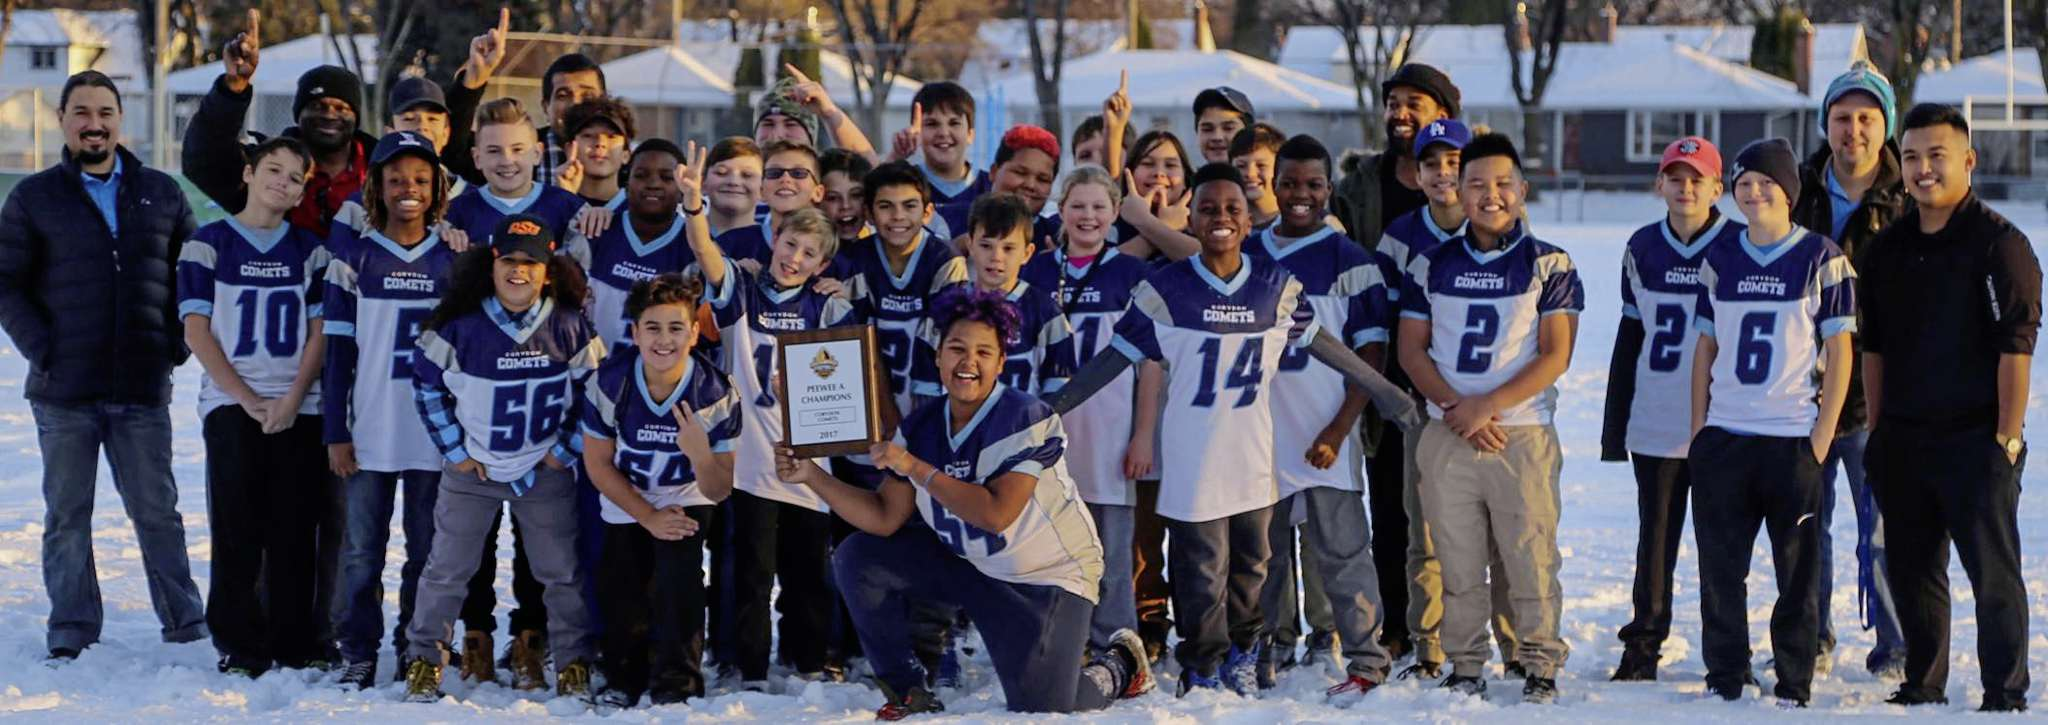 The Corydon Comets won the Manitoba Minor Football Association peewee A division championship on Oct. 29.